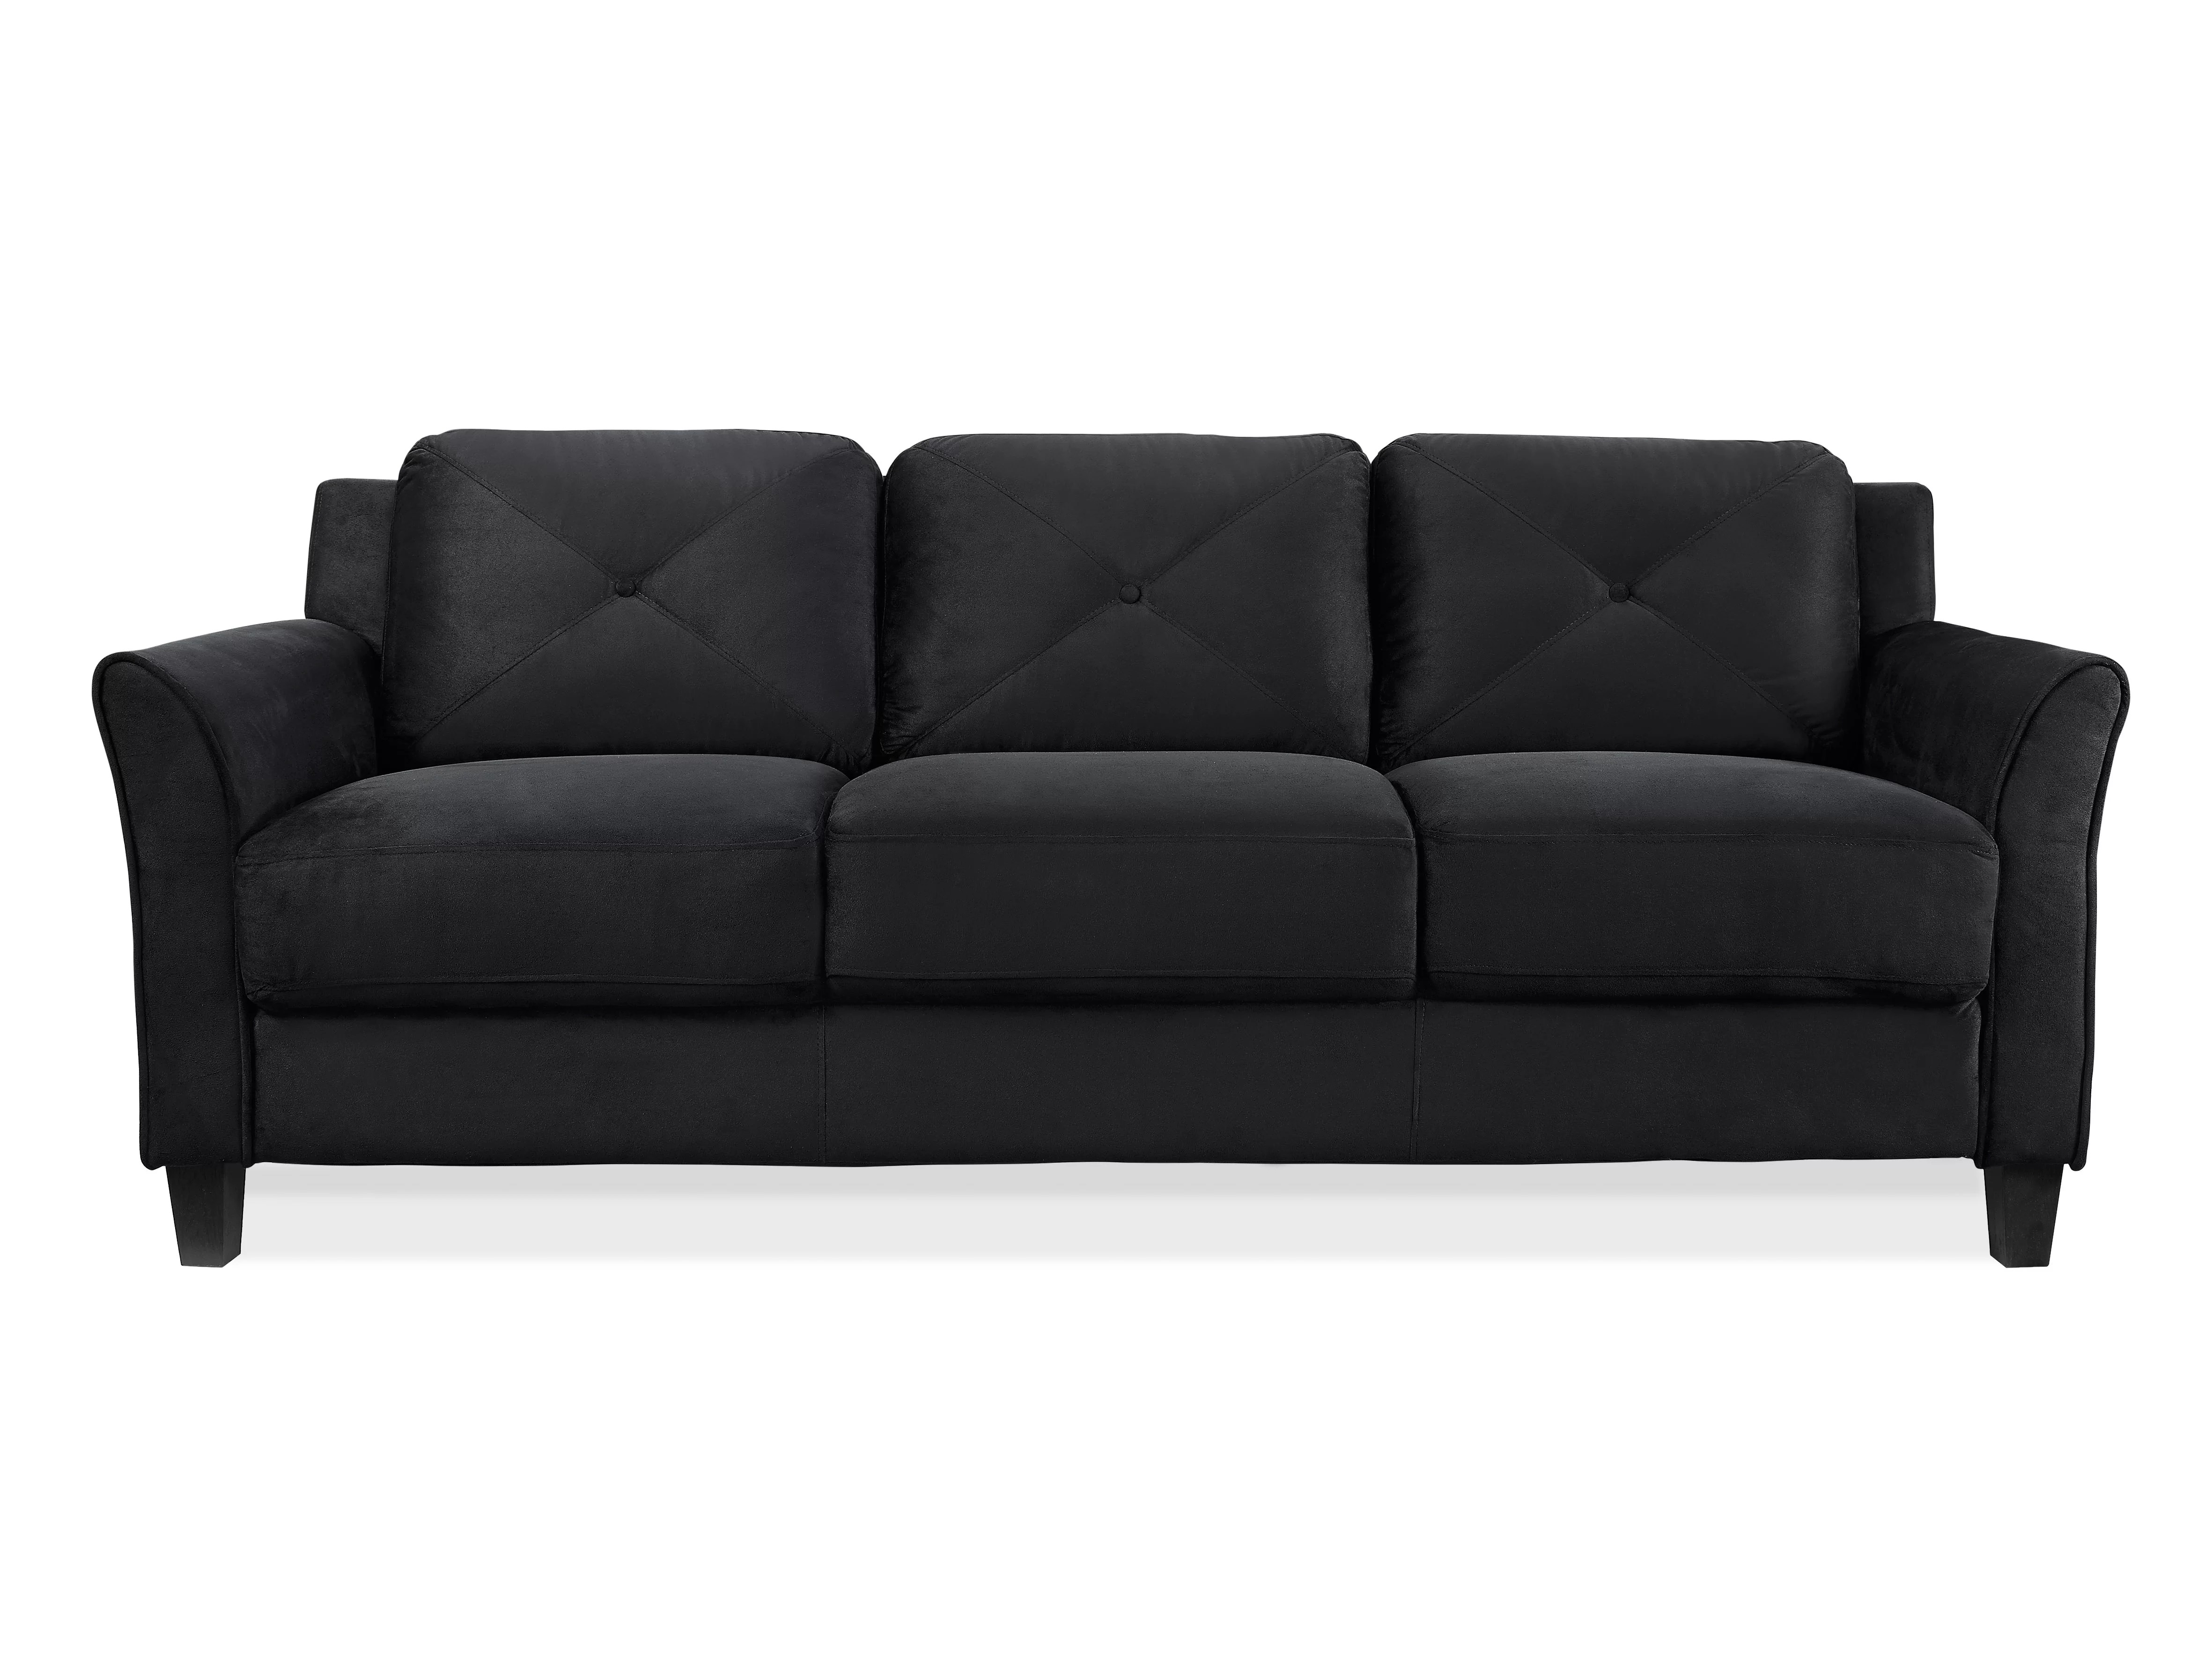 roll arm sofa canada jensen lewis park sofas couches you ll love wayfair quickview